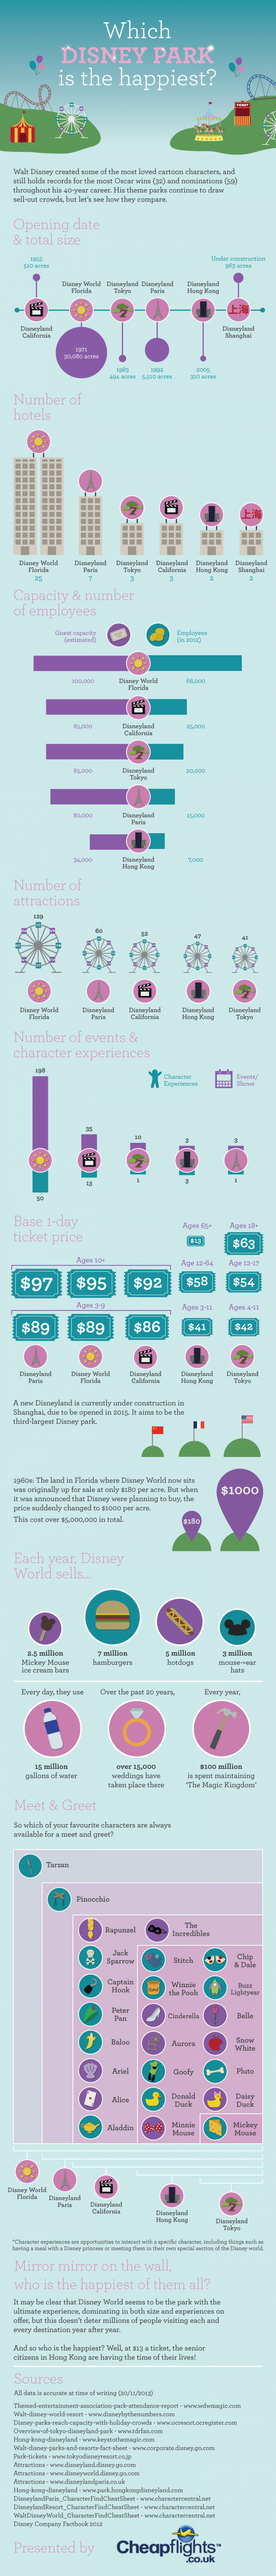 Which Disney Park is the Happiest  Infographic